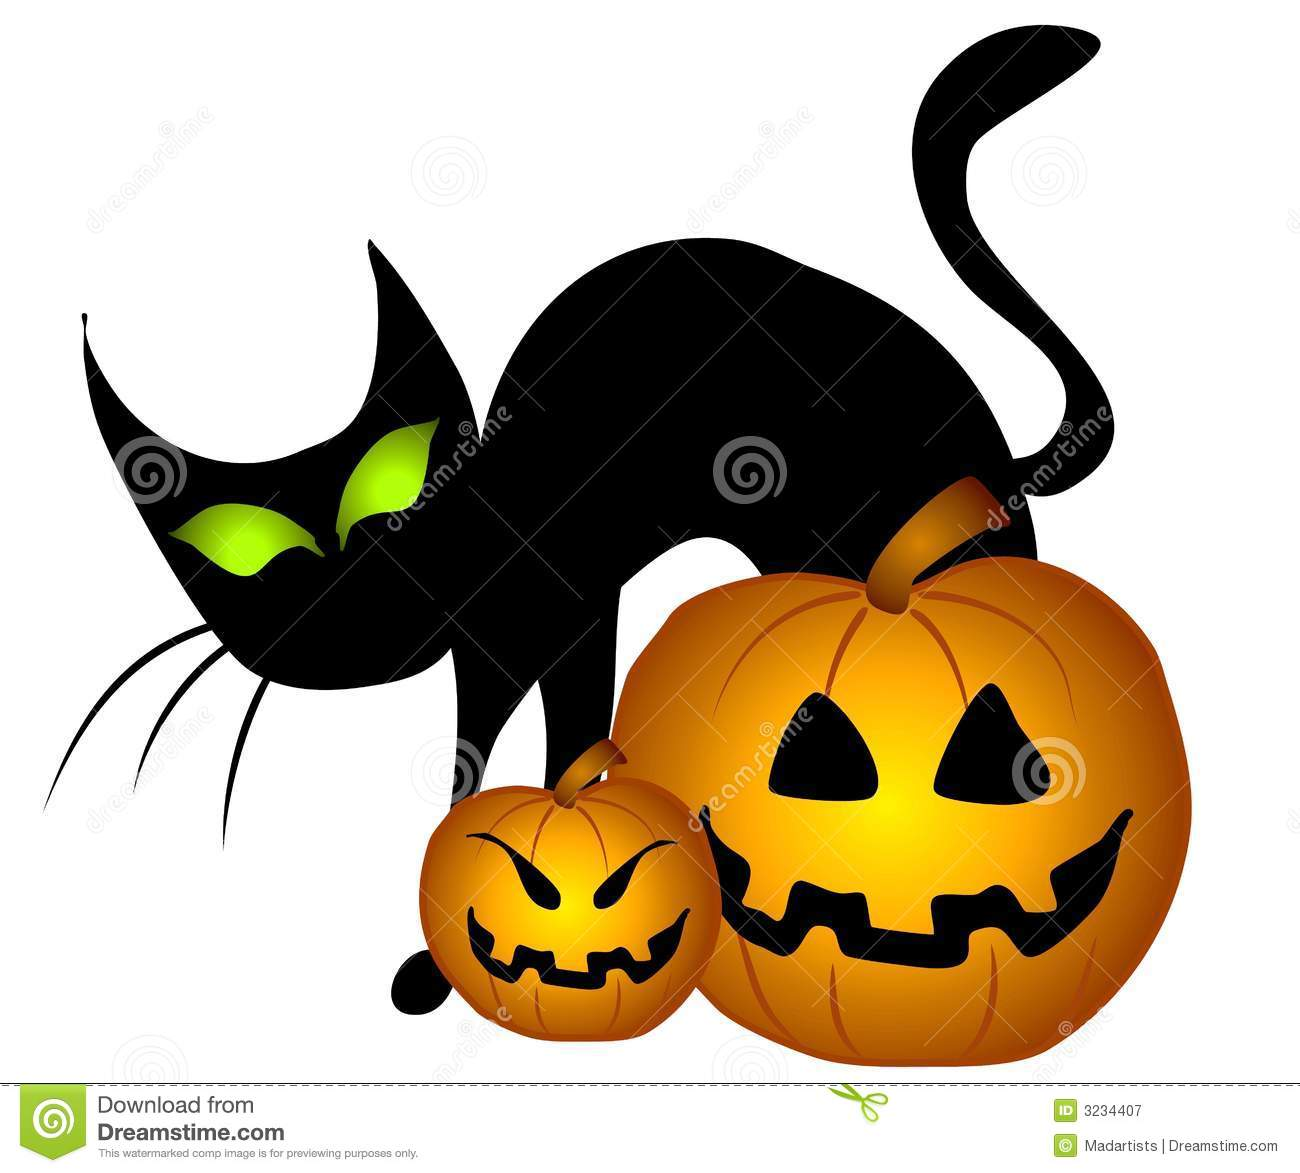 Black Cat Halloween Pumpkins Stock Illustration - Illustration of ...